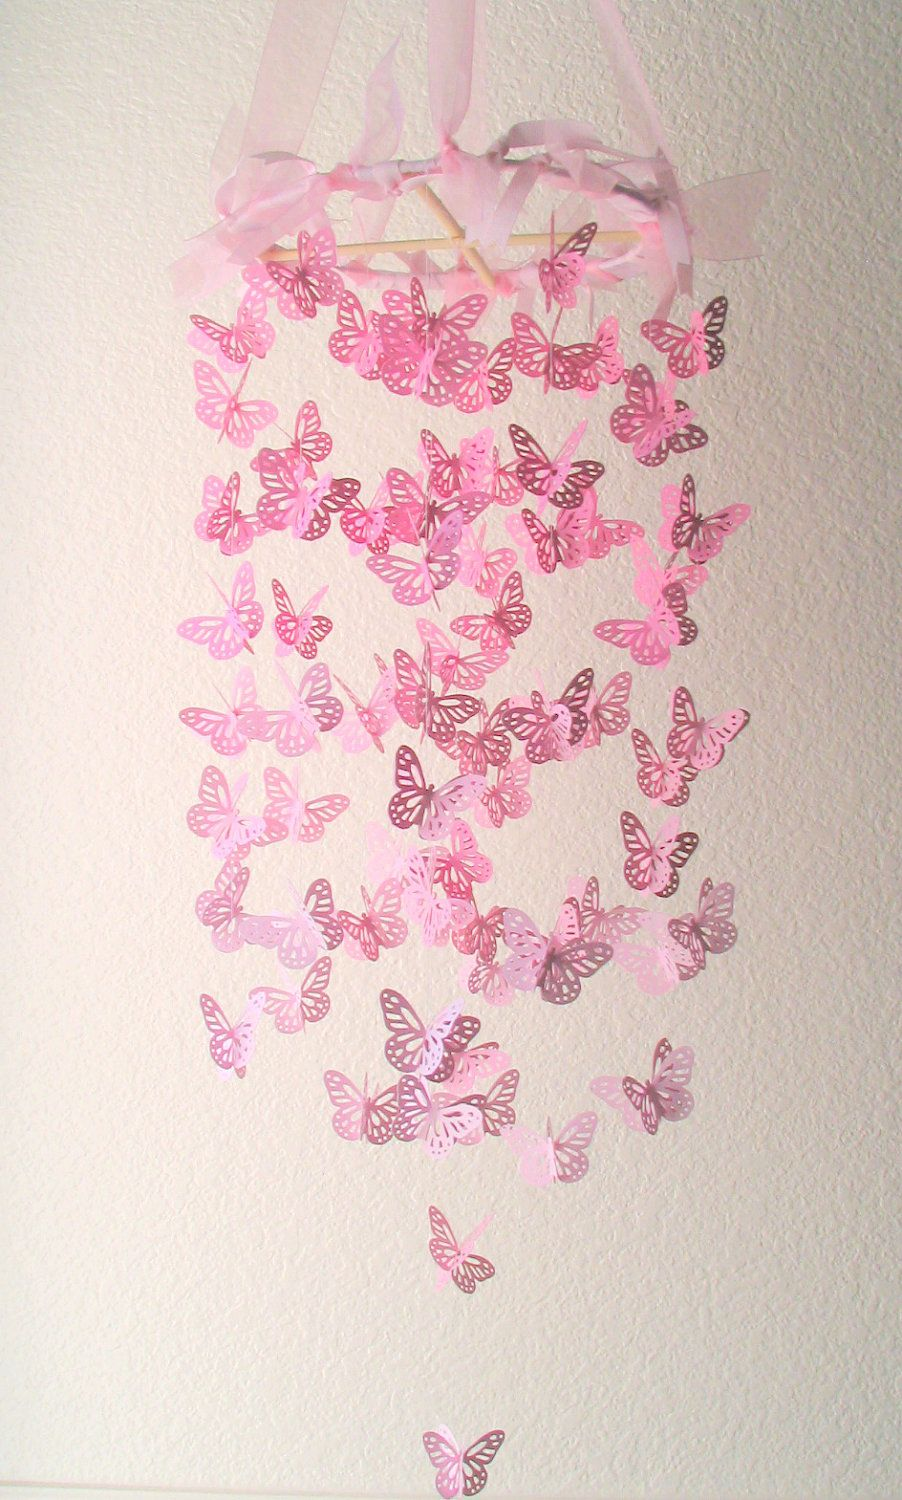 Items Similar To Pink Butterfly Chandelier  Butterfly Chandelier  Mobile,Butterfly Mobile,Nursery Mobile,Baby Girl Mobile On Etsy